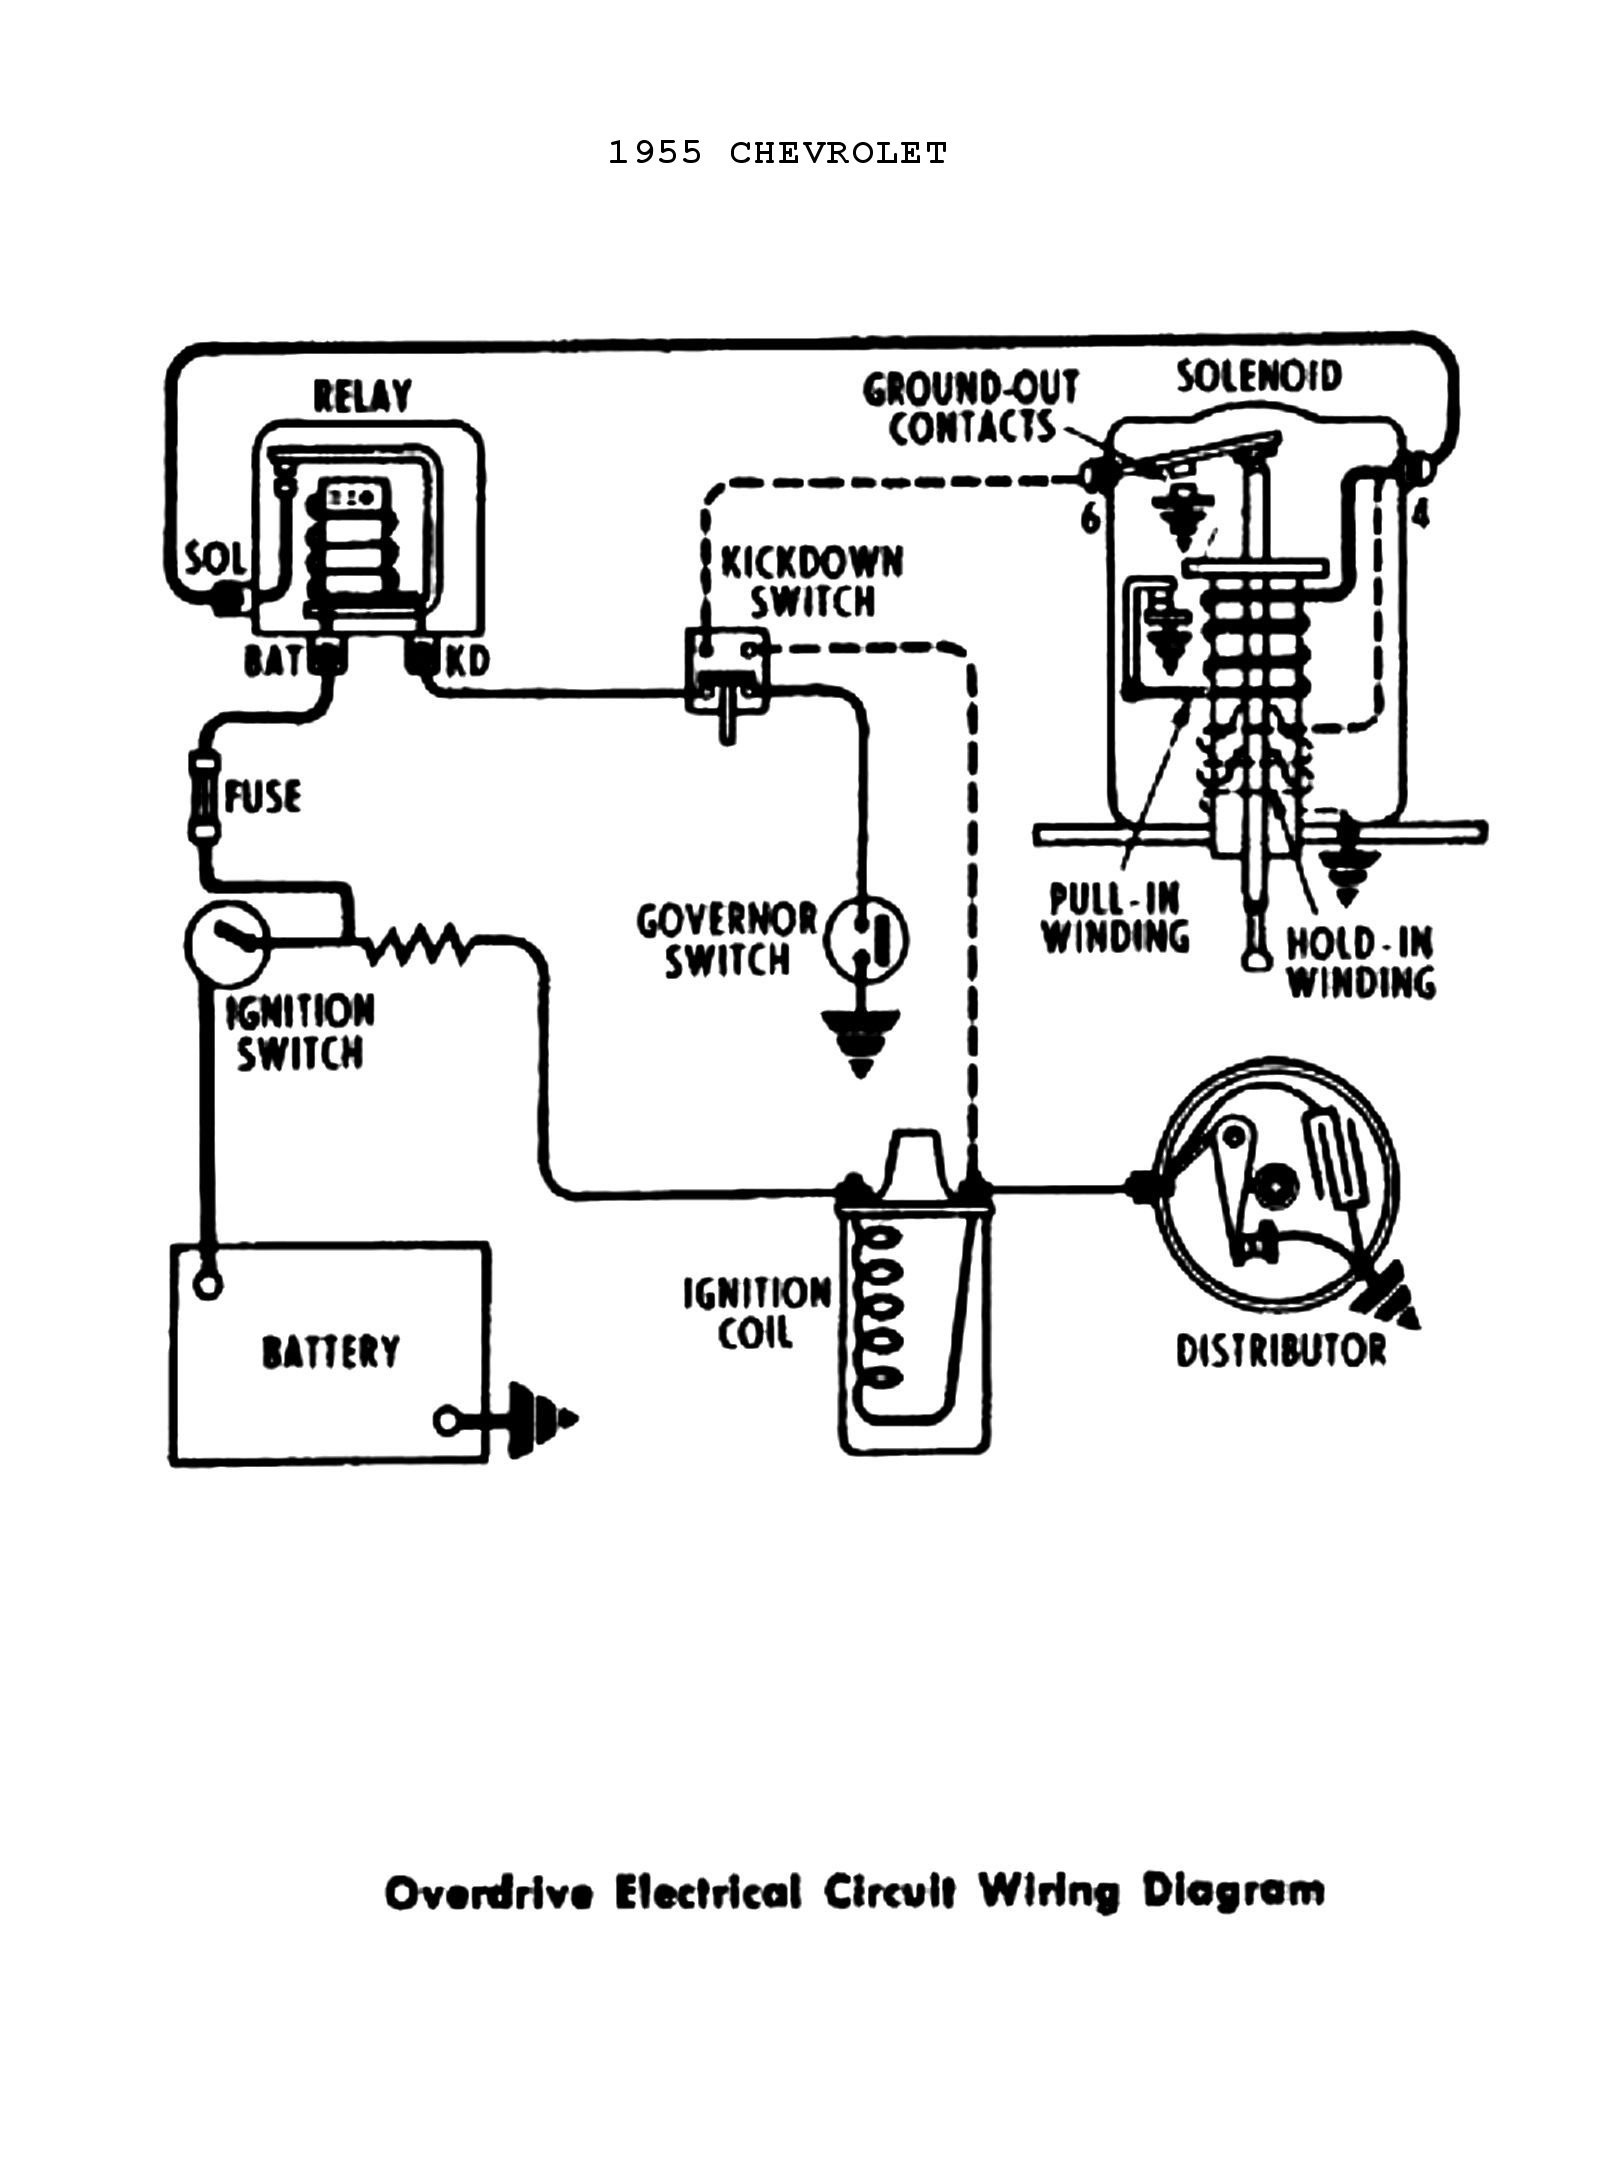 Wiring ignition coil diagram